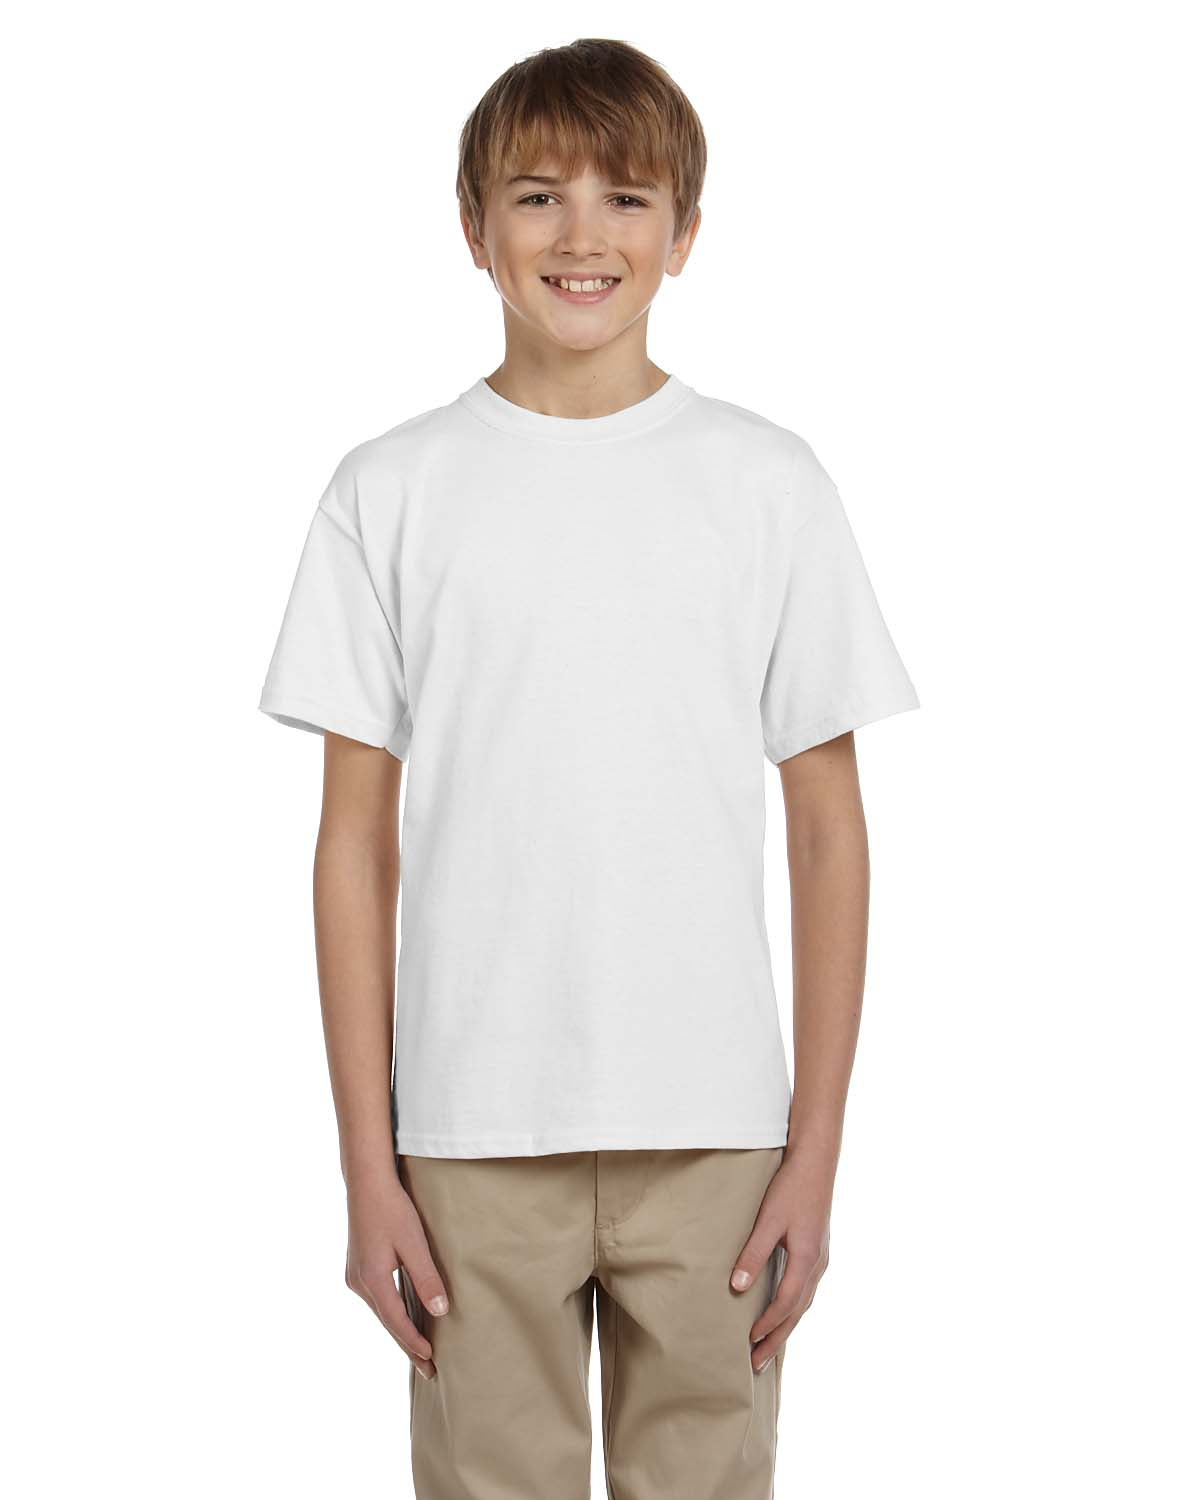 JERZEES - Youth HiDENSI-T T-Shirt - 363B